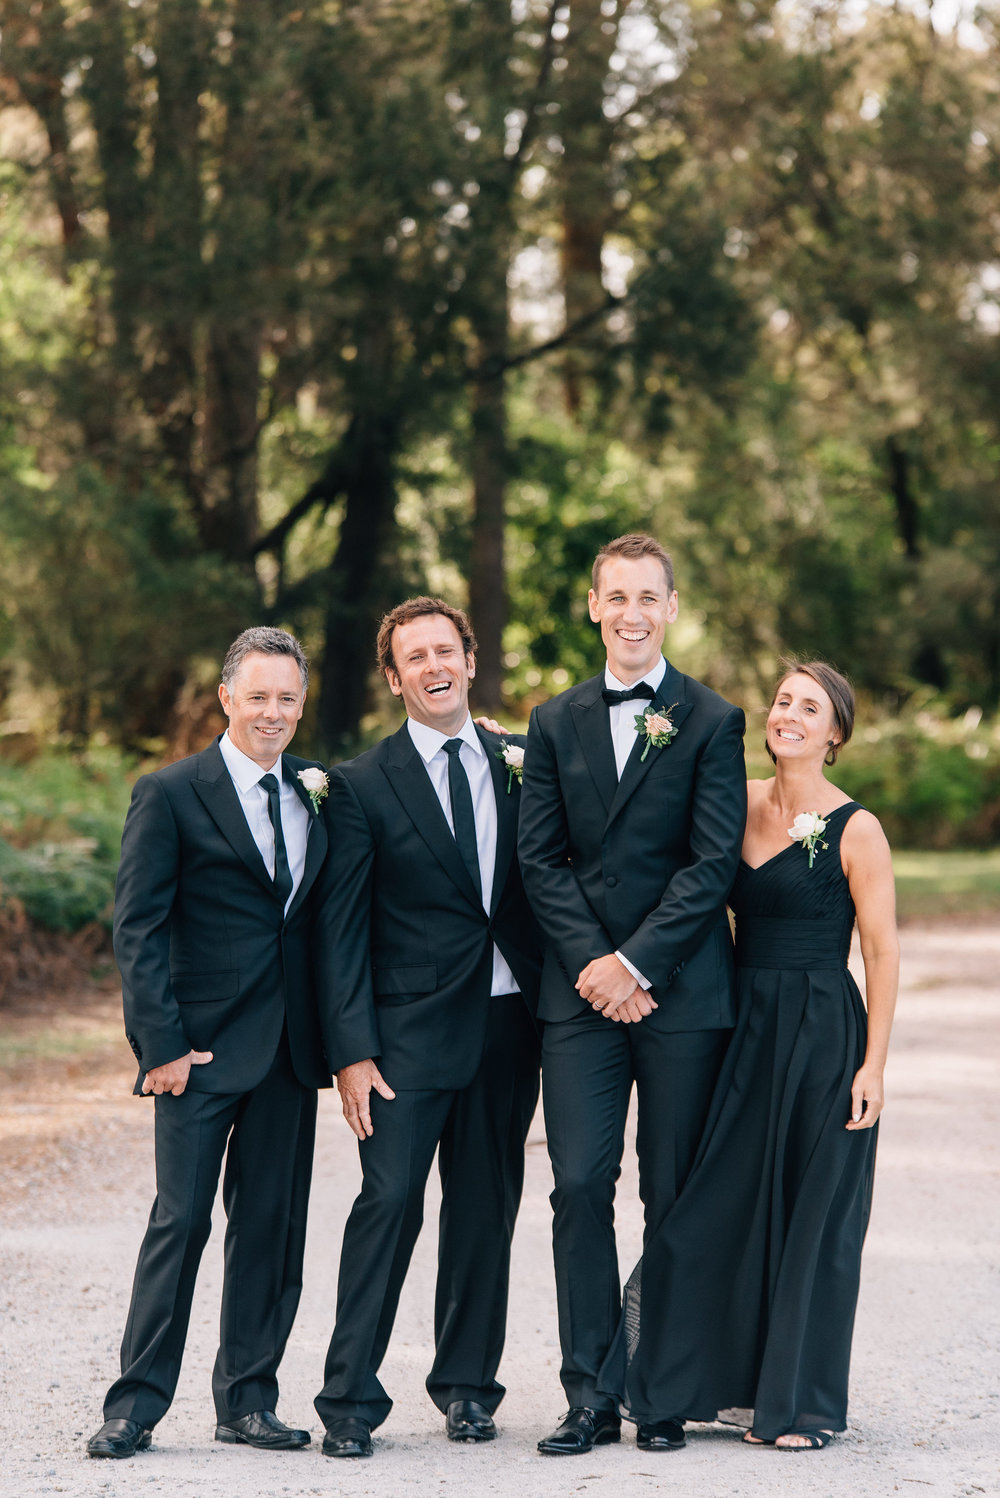 Groom, groomsmen and groomsmaid